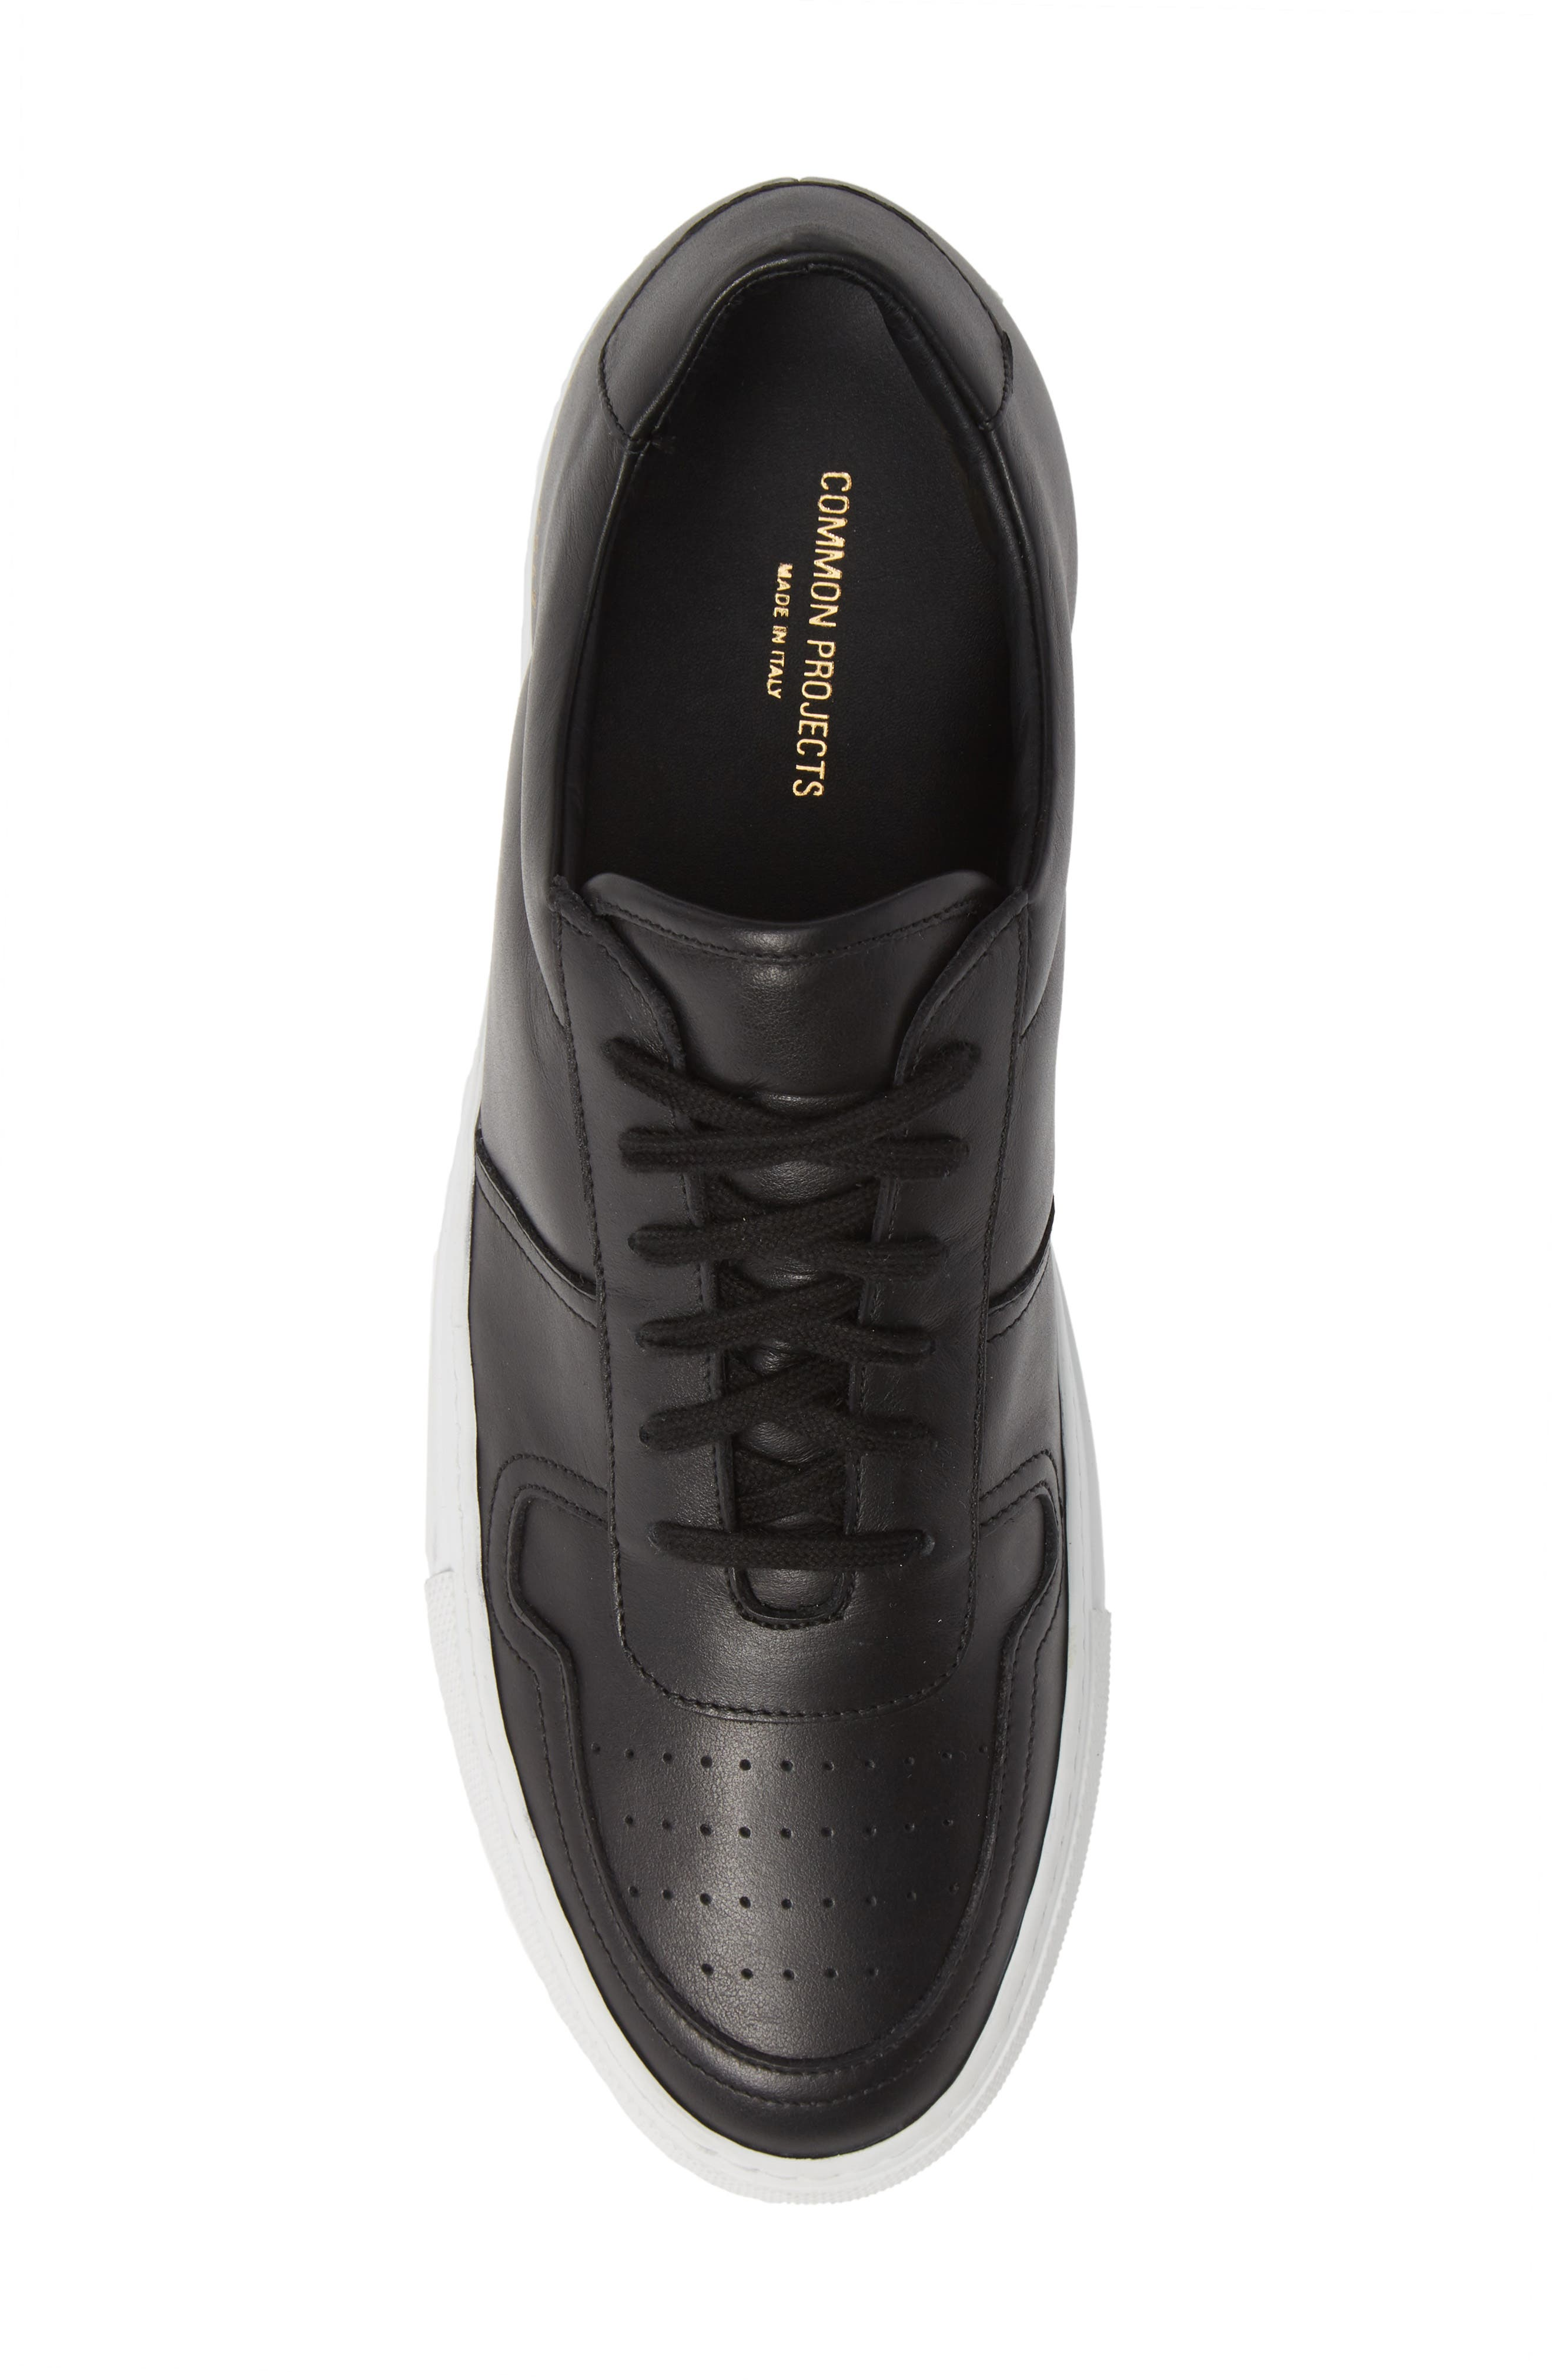 COMMON PROJECTS, Bball Low Top Sneaker, Alternate thumbnail 5, color, BLACK